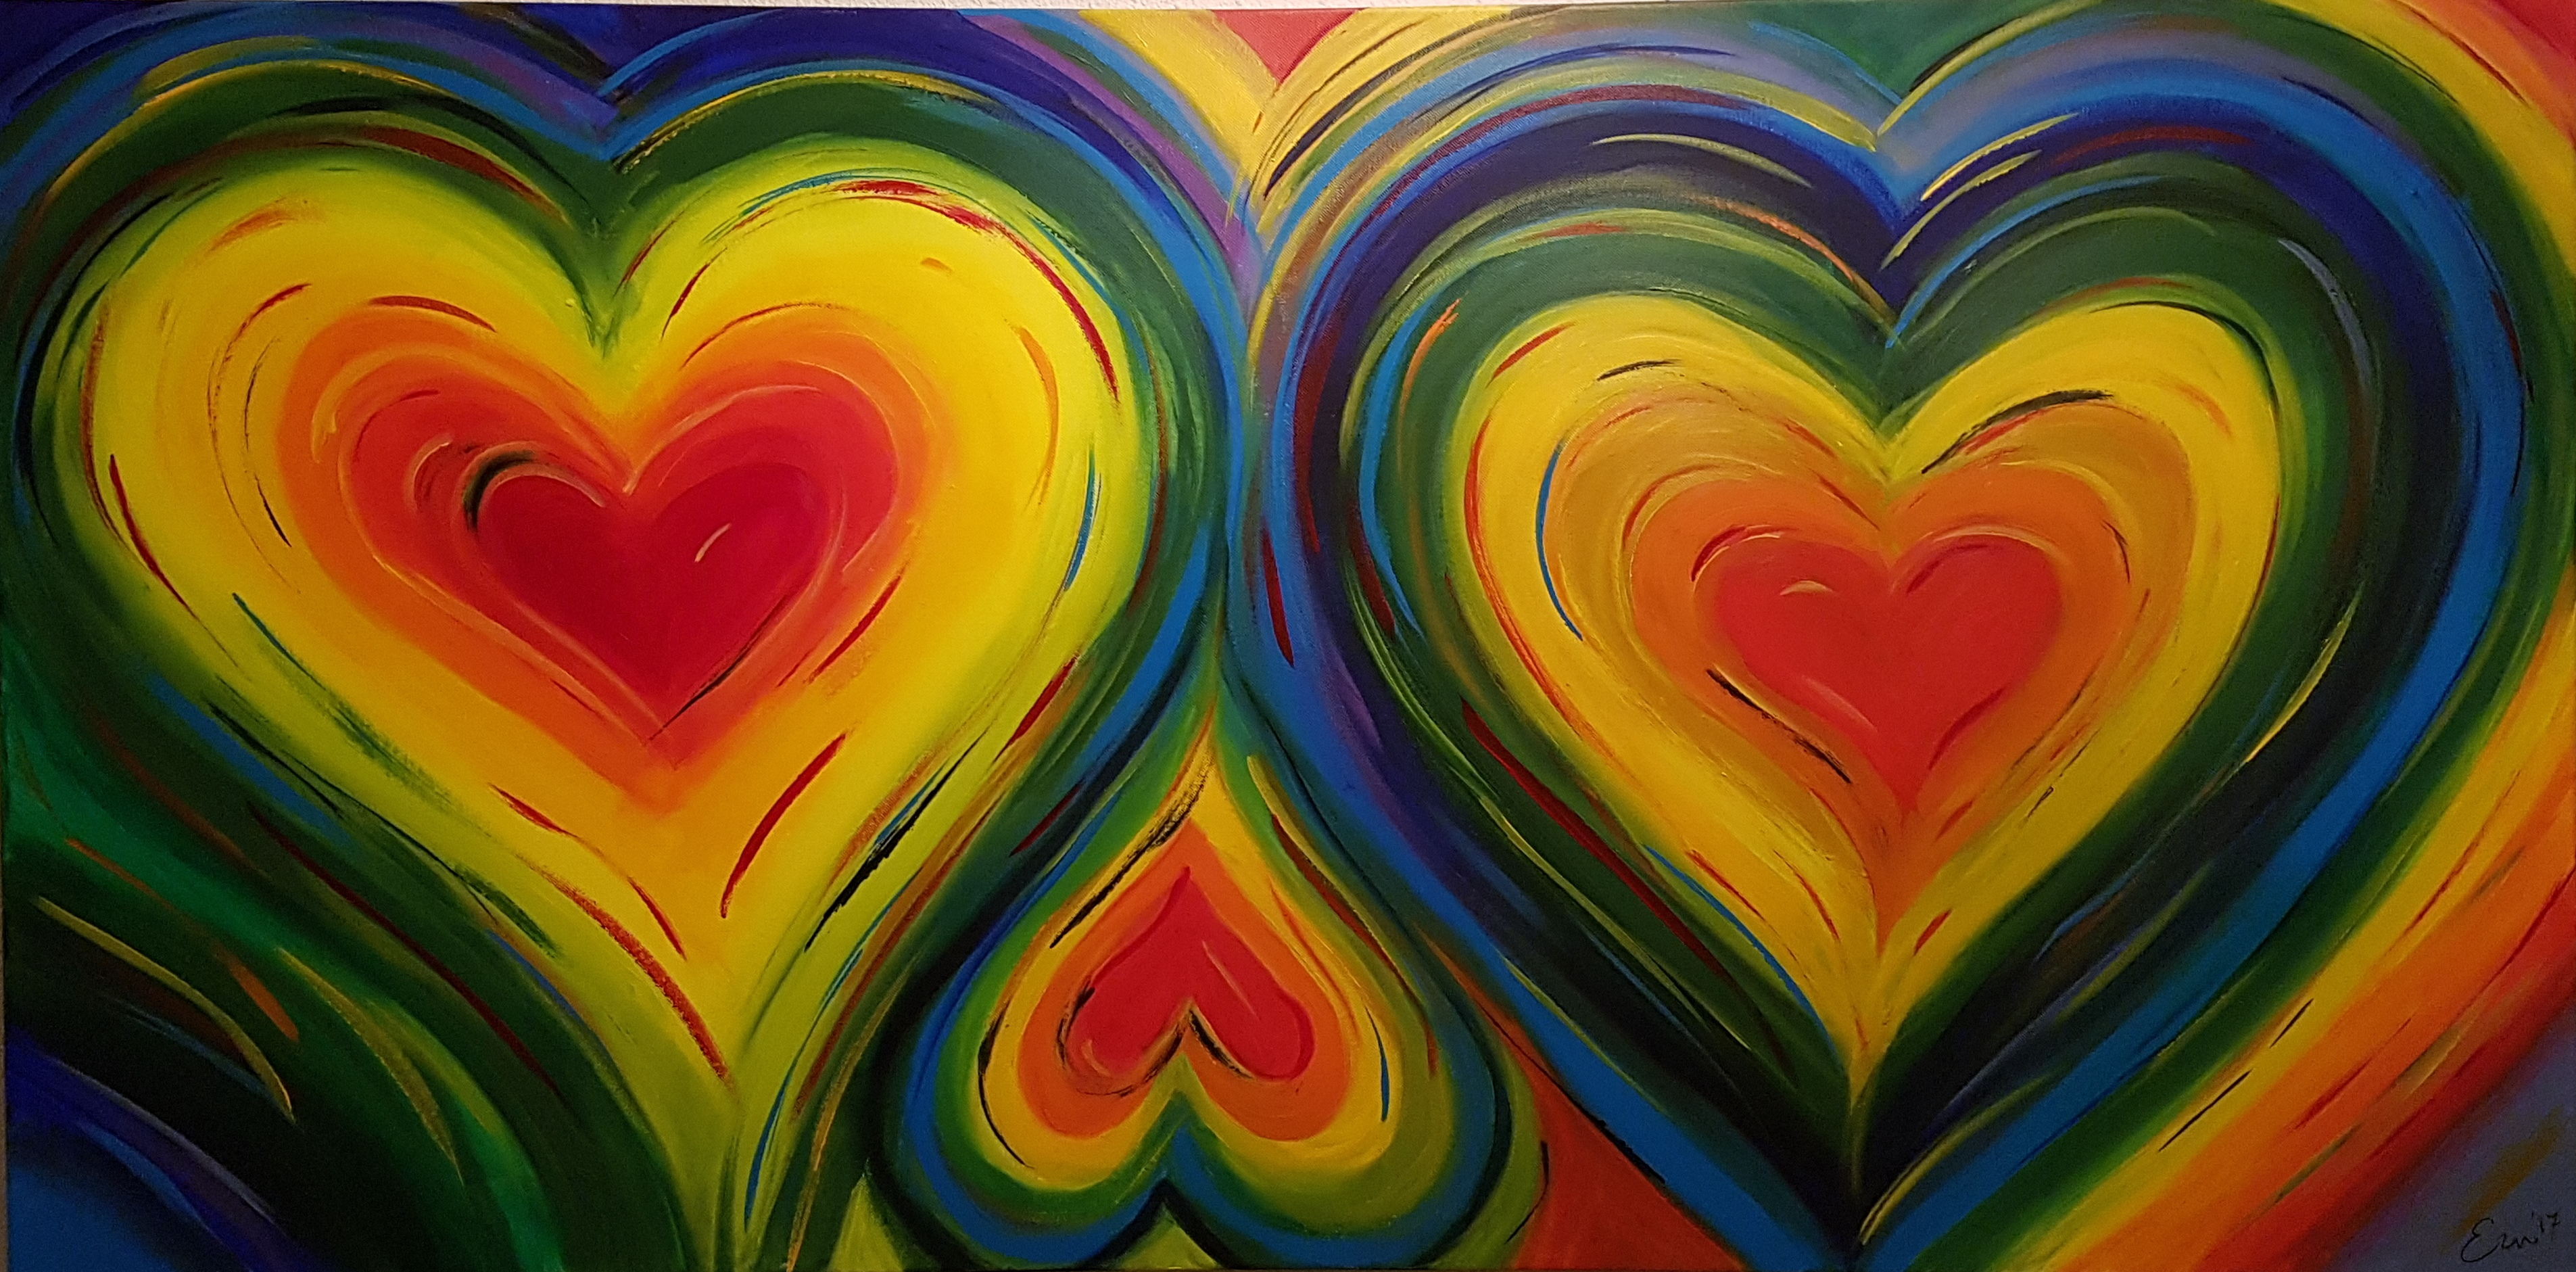 Color your heart 1.40 x 0.70 m